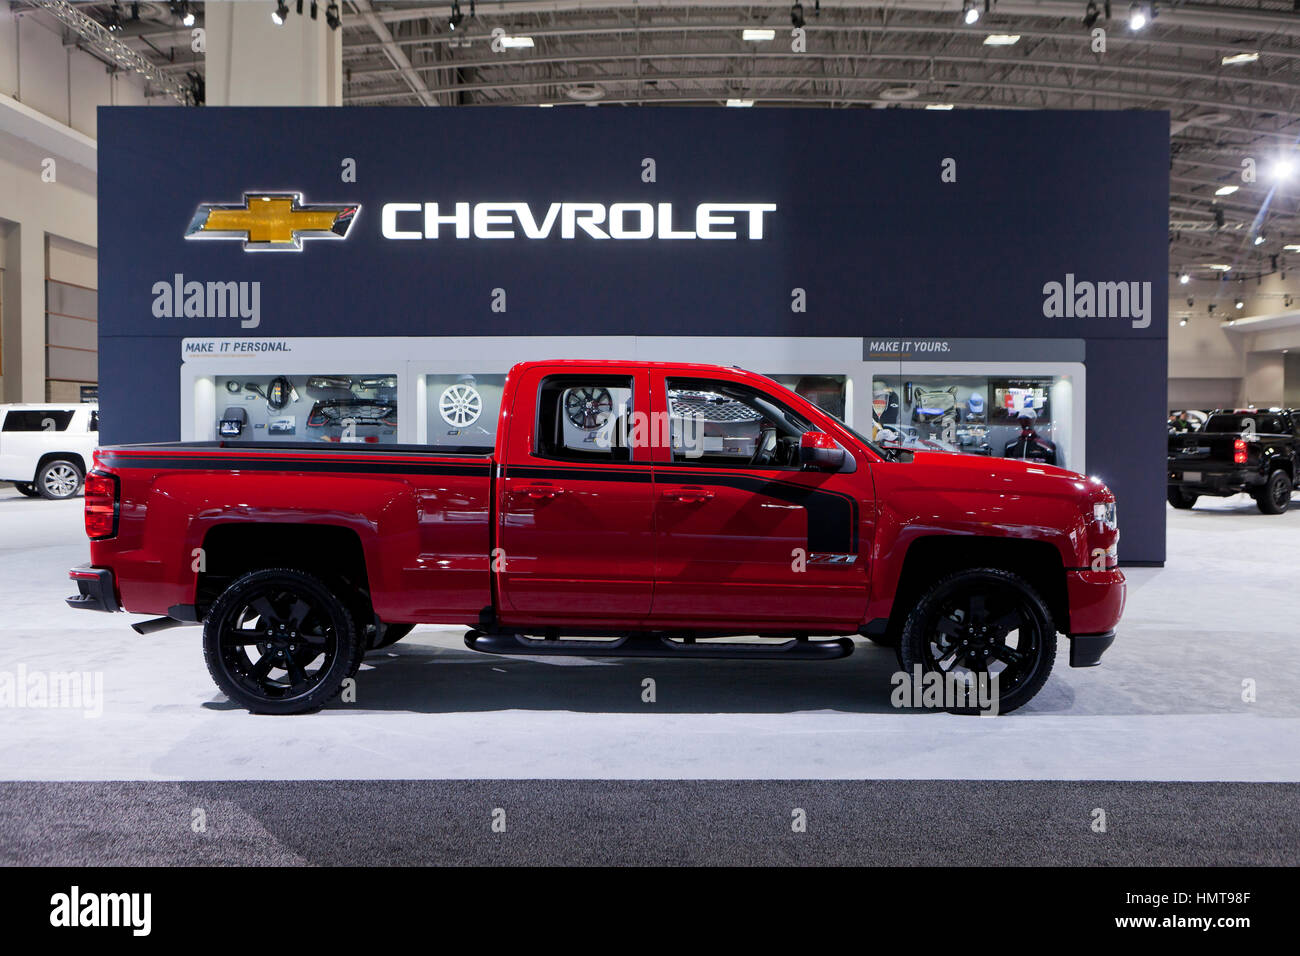 Silverado 98 chevy silverado z71 : 2017 Chevy Silverado 1500 Z71 pickup truck on display at ...